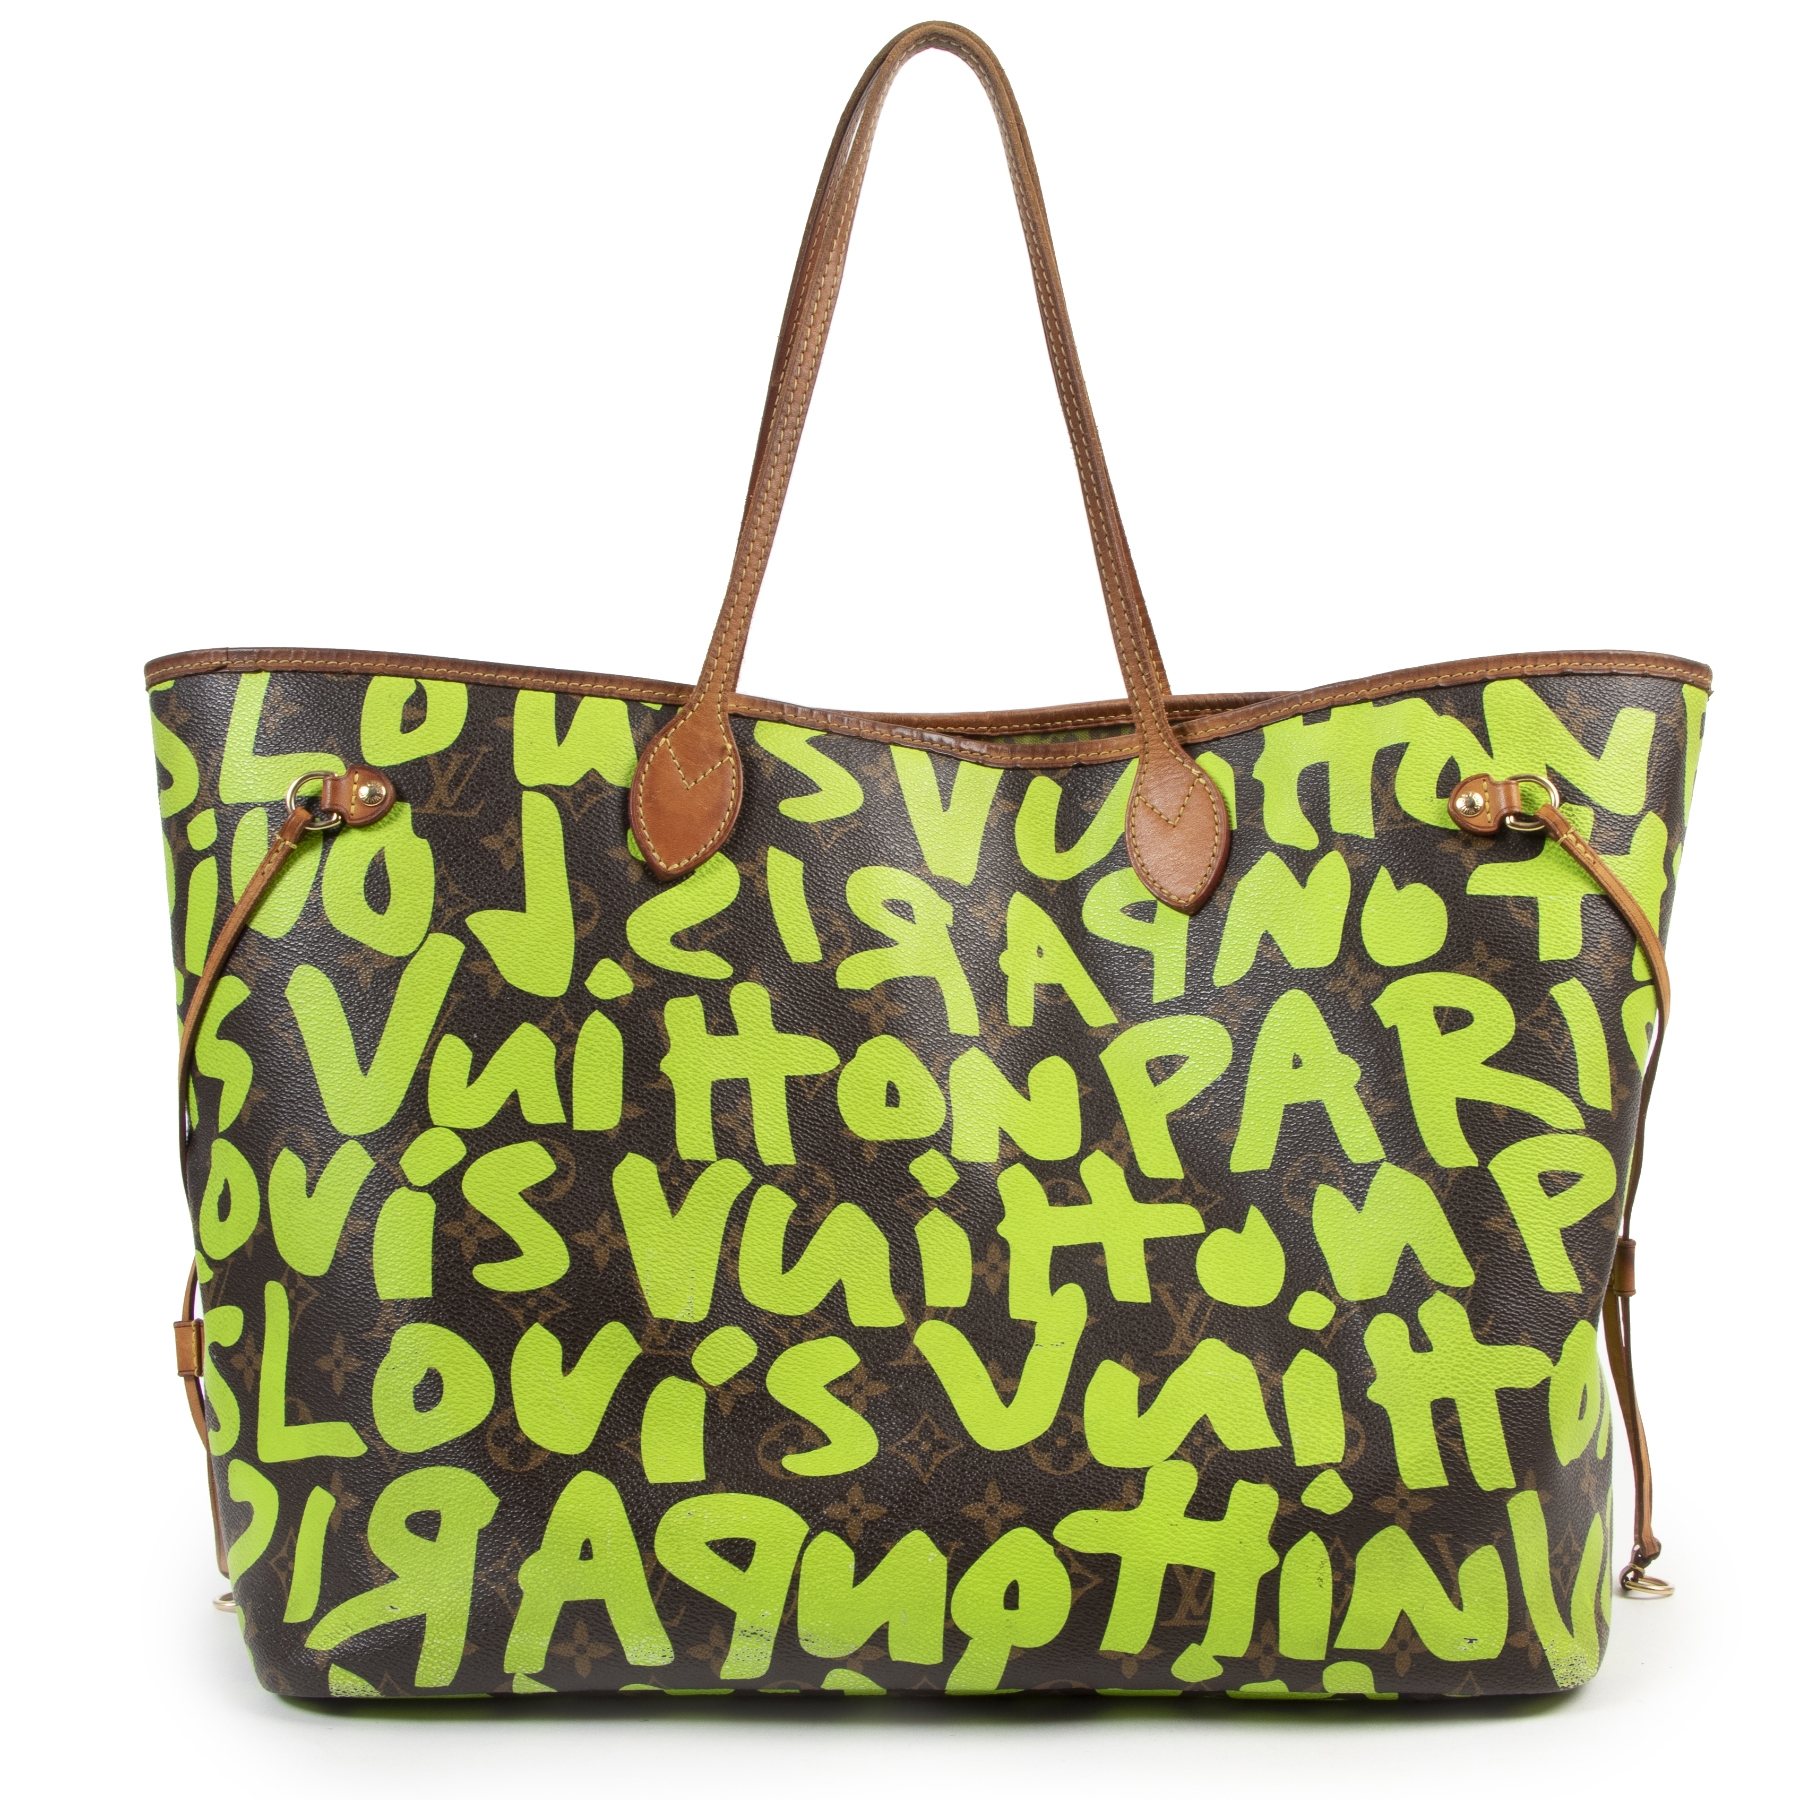 Authentic one-of-a-kind Louis Vuitton Limited Edition Stephen Sprouse Neon Green Grafitti Neverfull GM